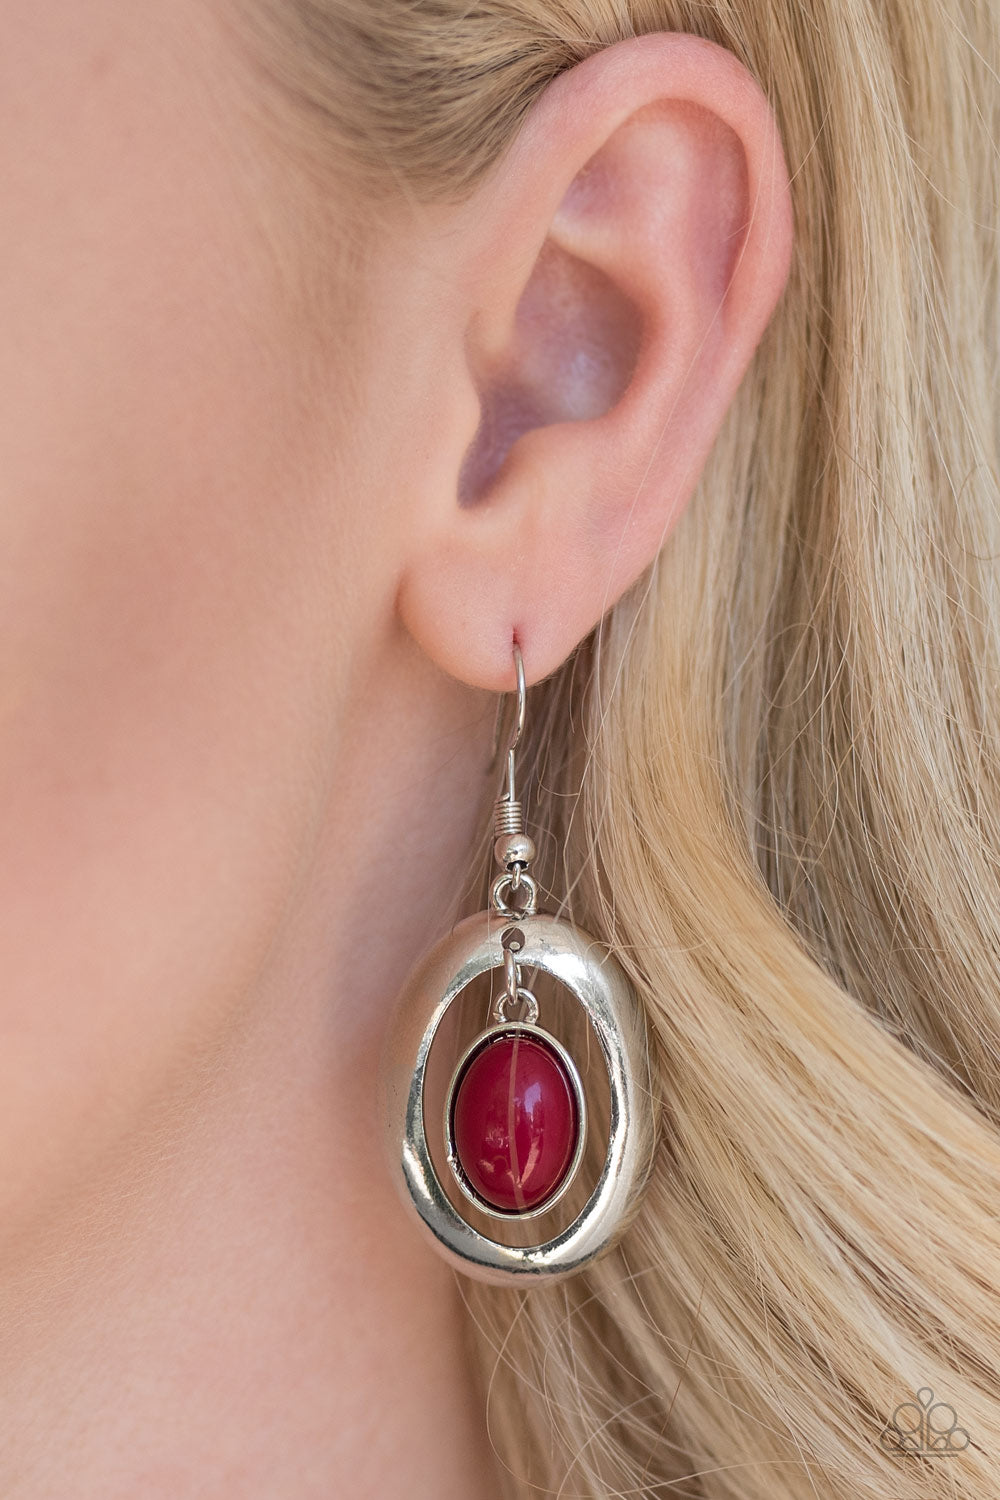 Tinted in the robust shade of wine, a shiny red bead swings from the top of a shimmery silver frame, creating a whimsical lure. Earring attaches to a standard fishhook fitting.  Sold as one pair of earrings.  Always nickel and lead free.